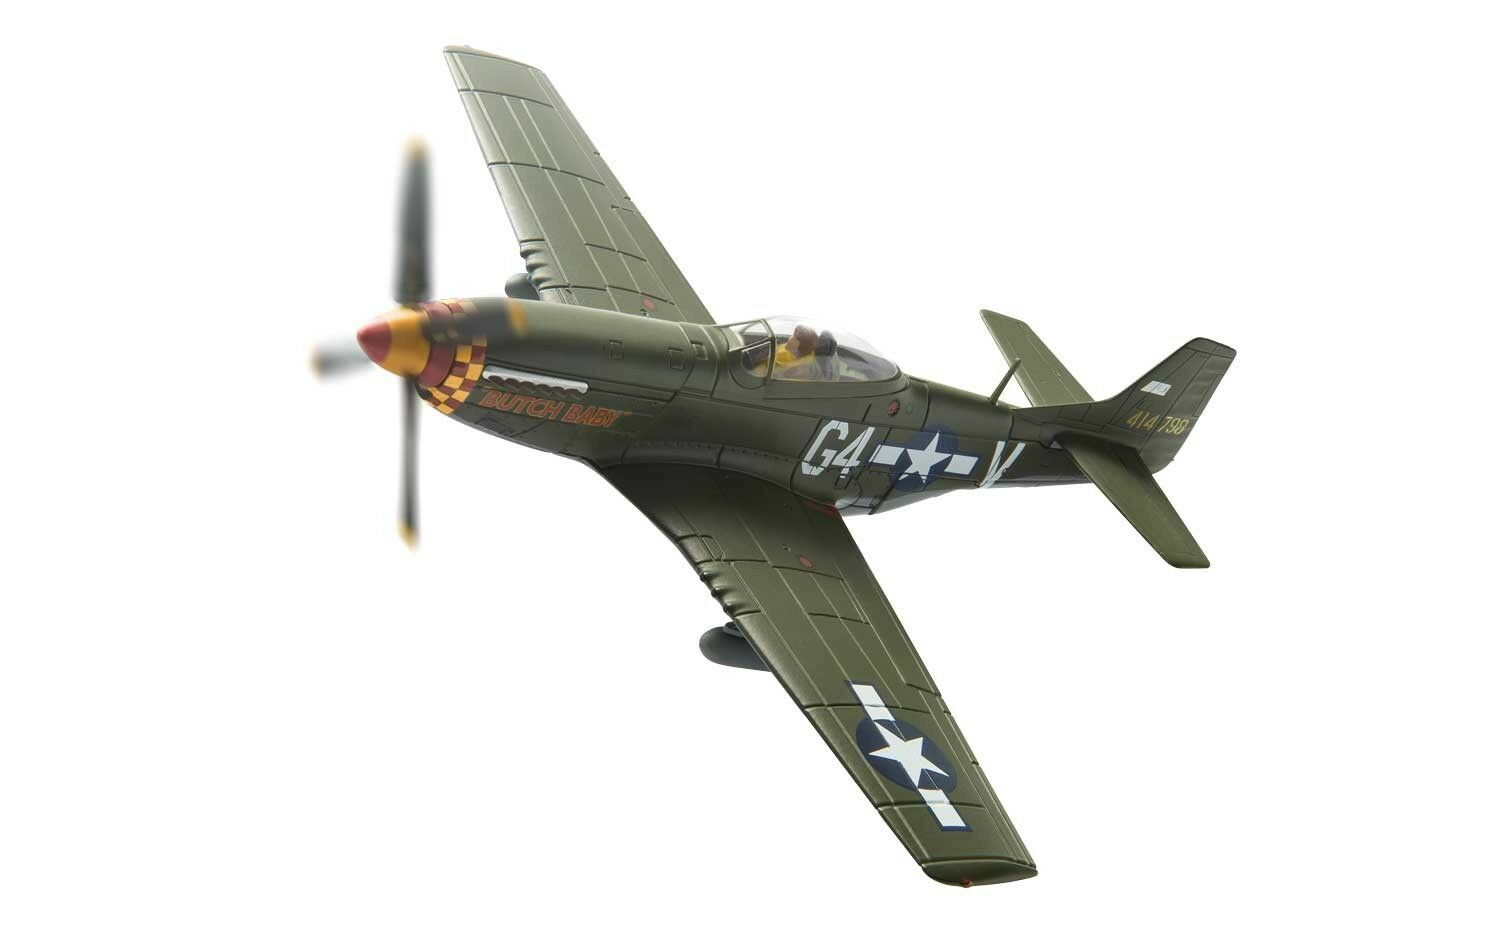 CORGI 1 72 AA27701 P-51D MUSTANG, LT.JULIAN H BERTRAM 'BUTCH BABY' NEW (UP)